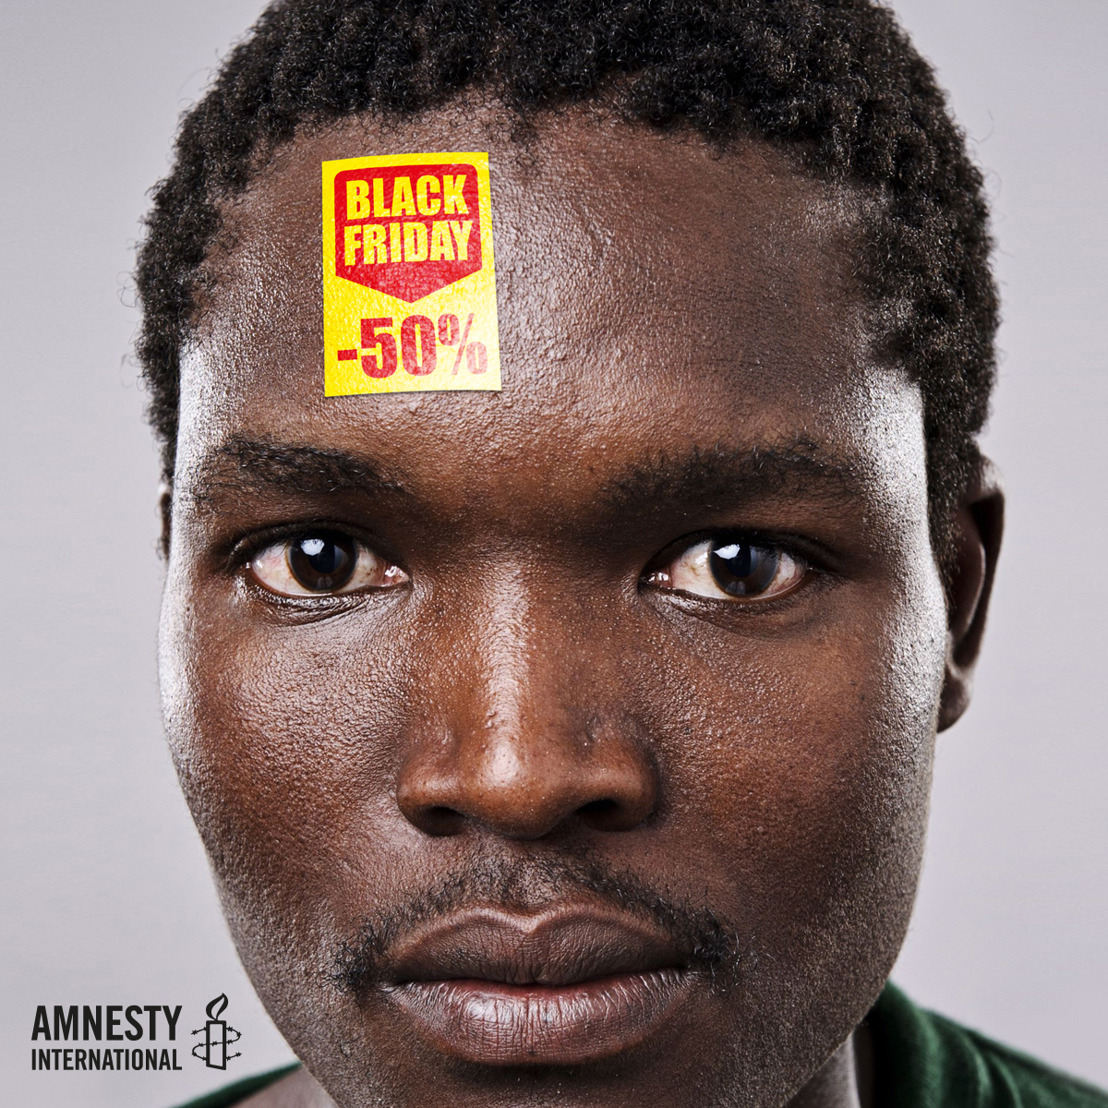 AIR AND AMNESTY FIGHT THE SALE OF HUMAN BEINGS